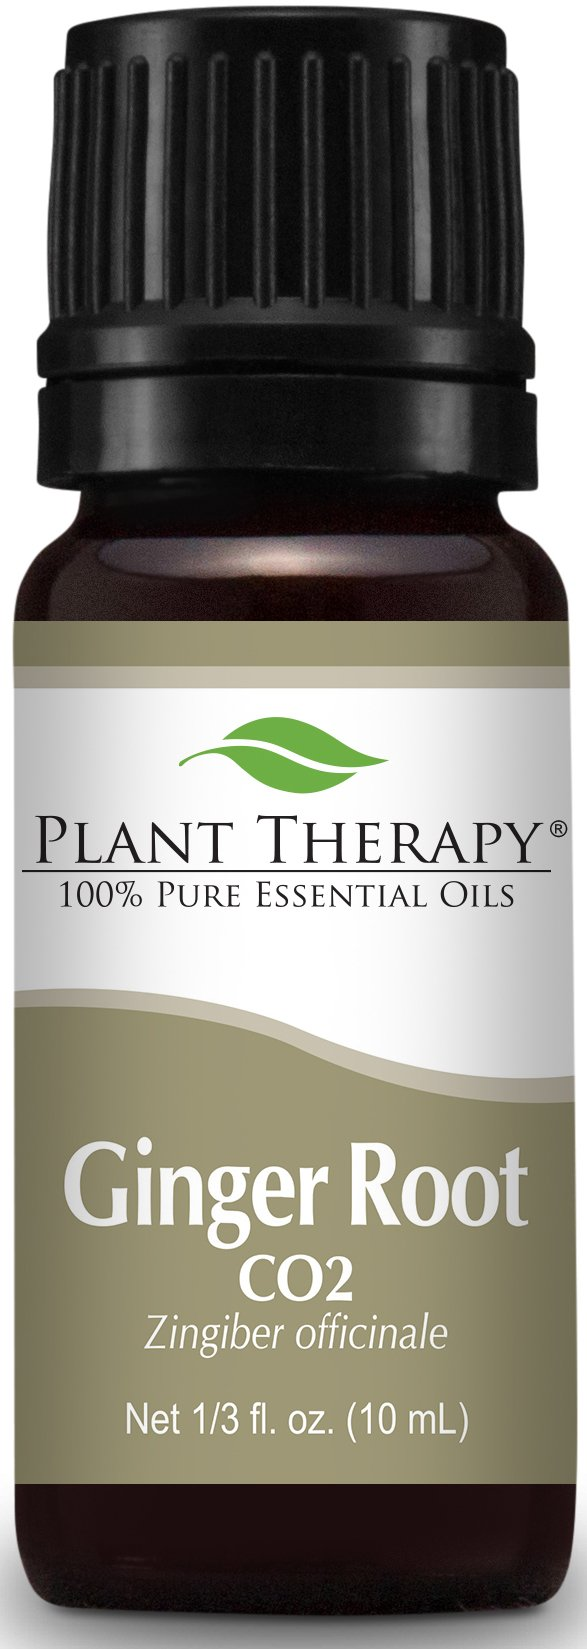 Plant Therapy Ginger Root CO2 Extract. 100% Pure, Undiluted, Therapeutic Grade. 10 ml (1/3 oz).